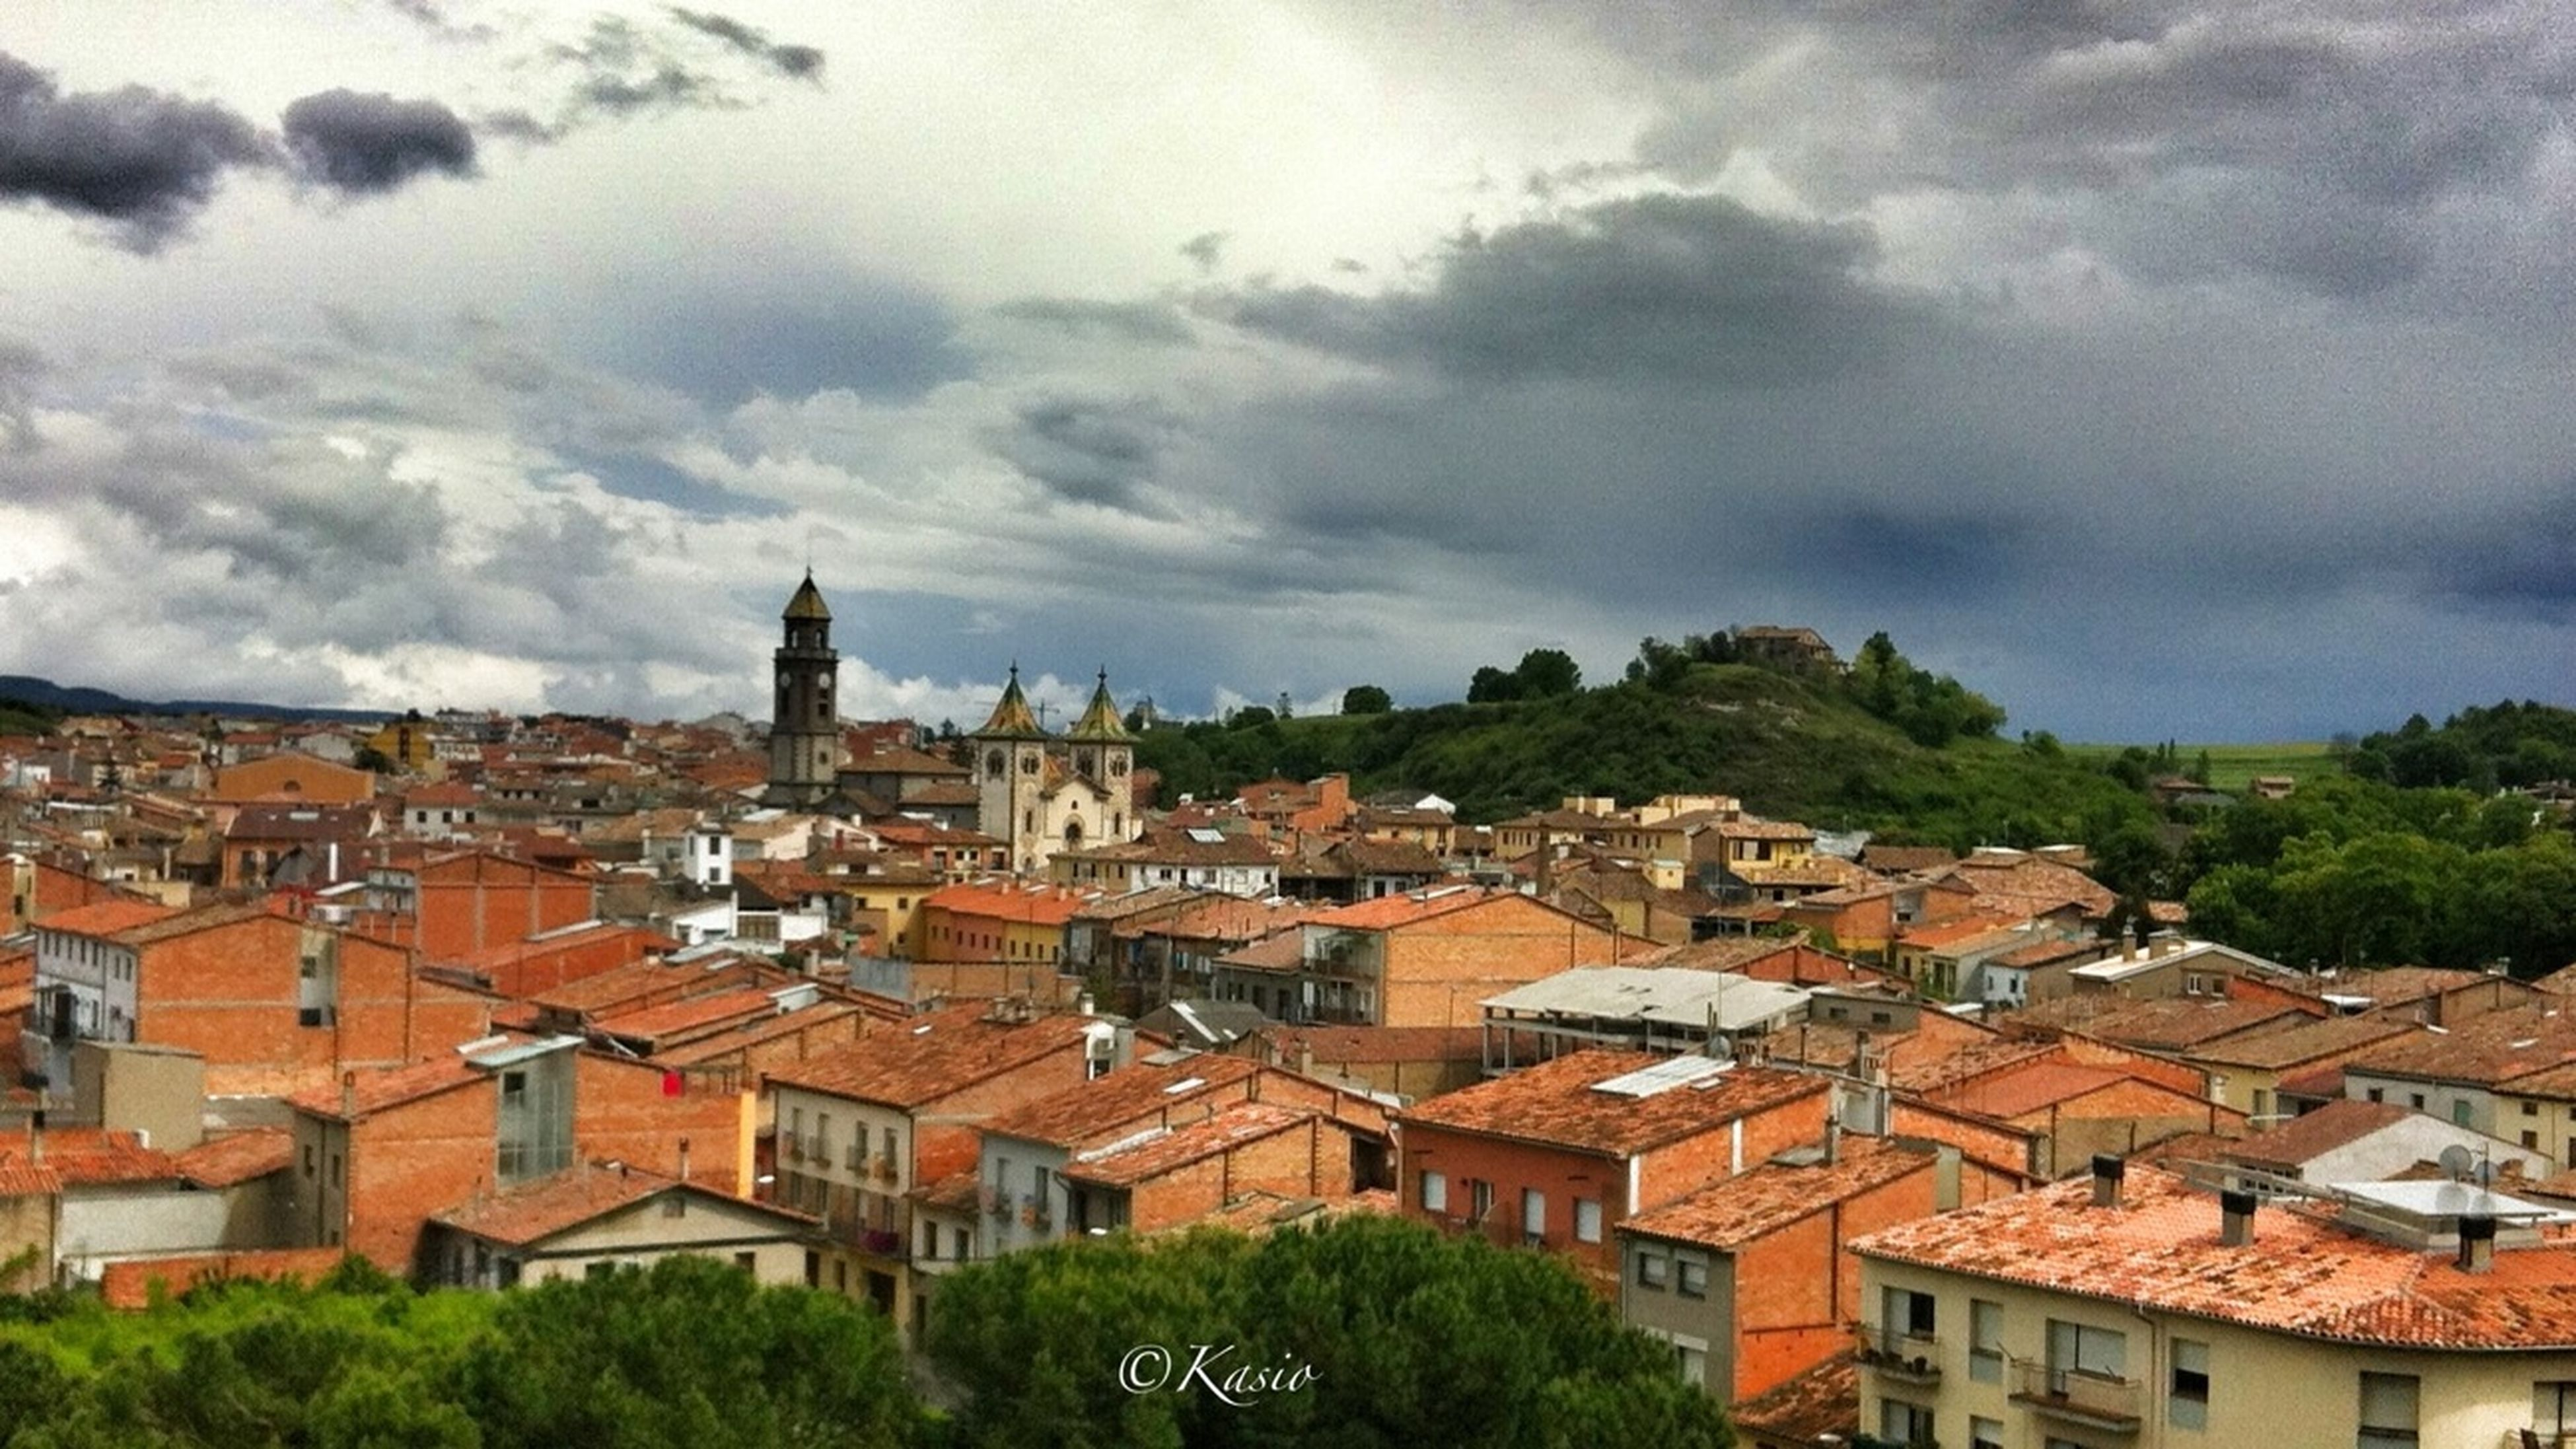 building exterior, architecture, built structure, residential district, sky, crowded, residential structure, house, residential building, high angle view, city, townscape, cityscape, roof, cloud - sky, town, tree, cloudy, community, cloud